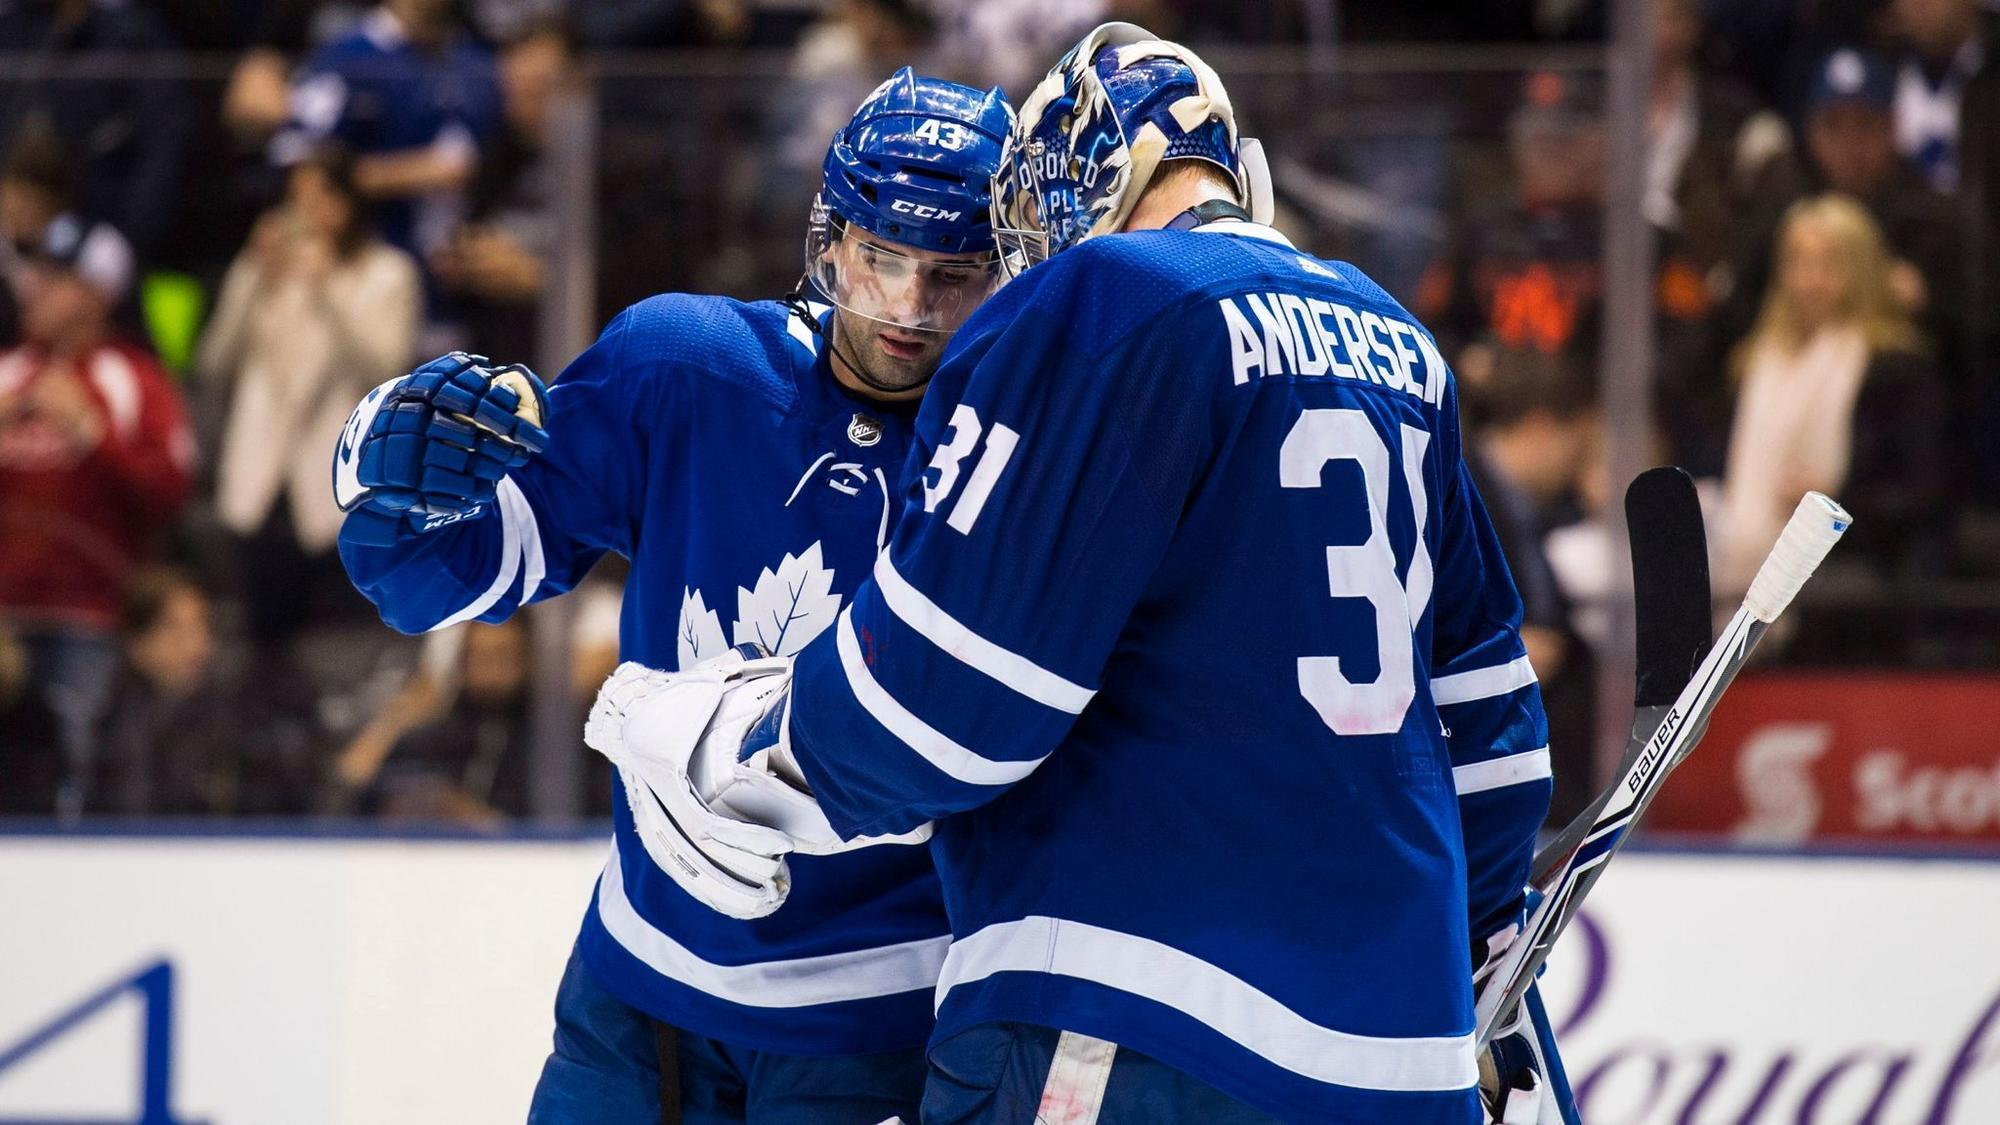 Fl-sp-panthers-maple-leafs-20180220